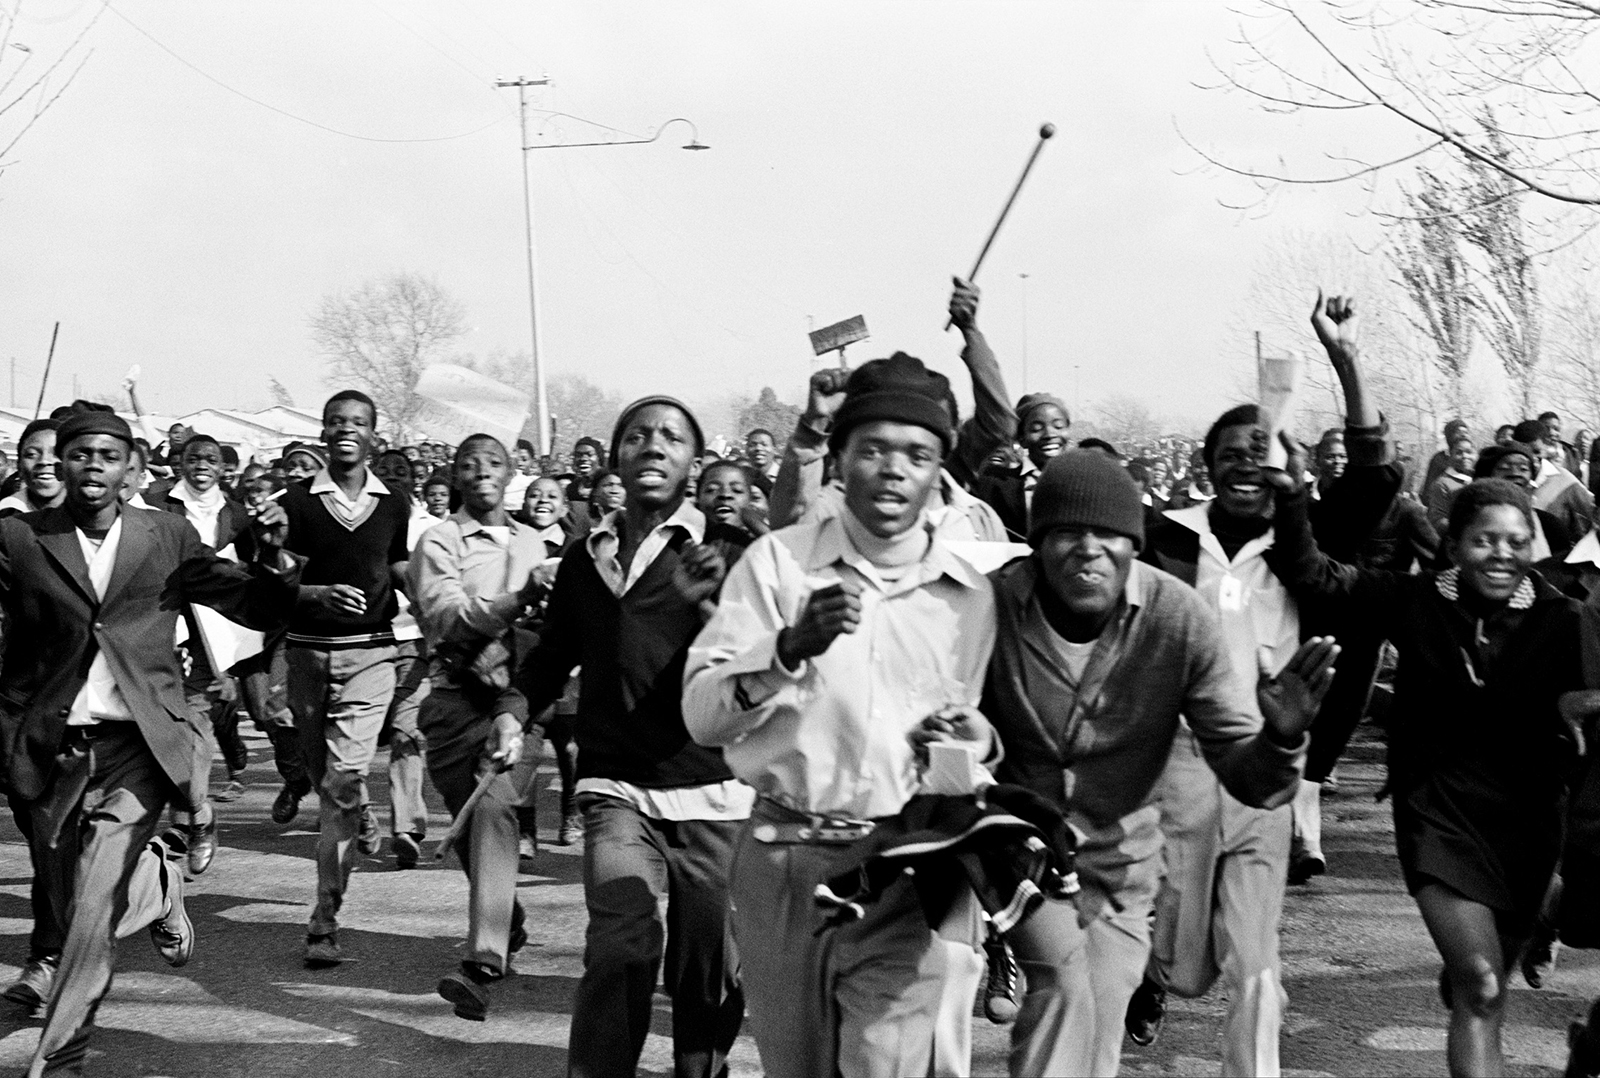 history of apartheid in south africa Apartheid in south africa had been a national policy for a long time (from 1948 to 1994), instituted by the national party of south africa --- but the seeds of this systematic segregation by race started well before 1948, as early as 1870s and 1880s when a significant number of dutch and english colonial.